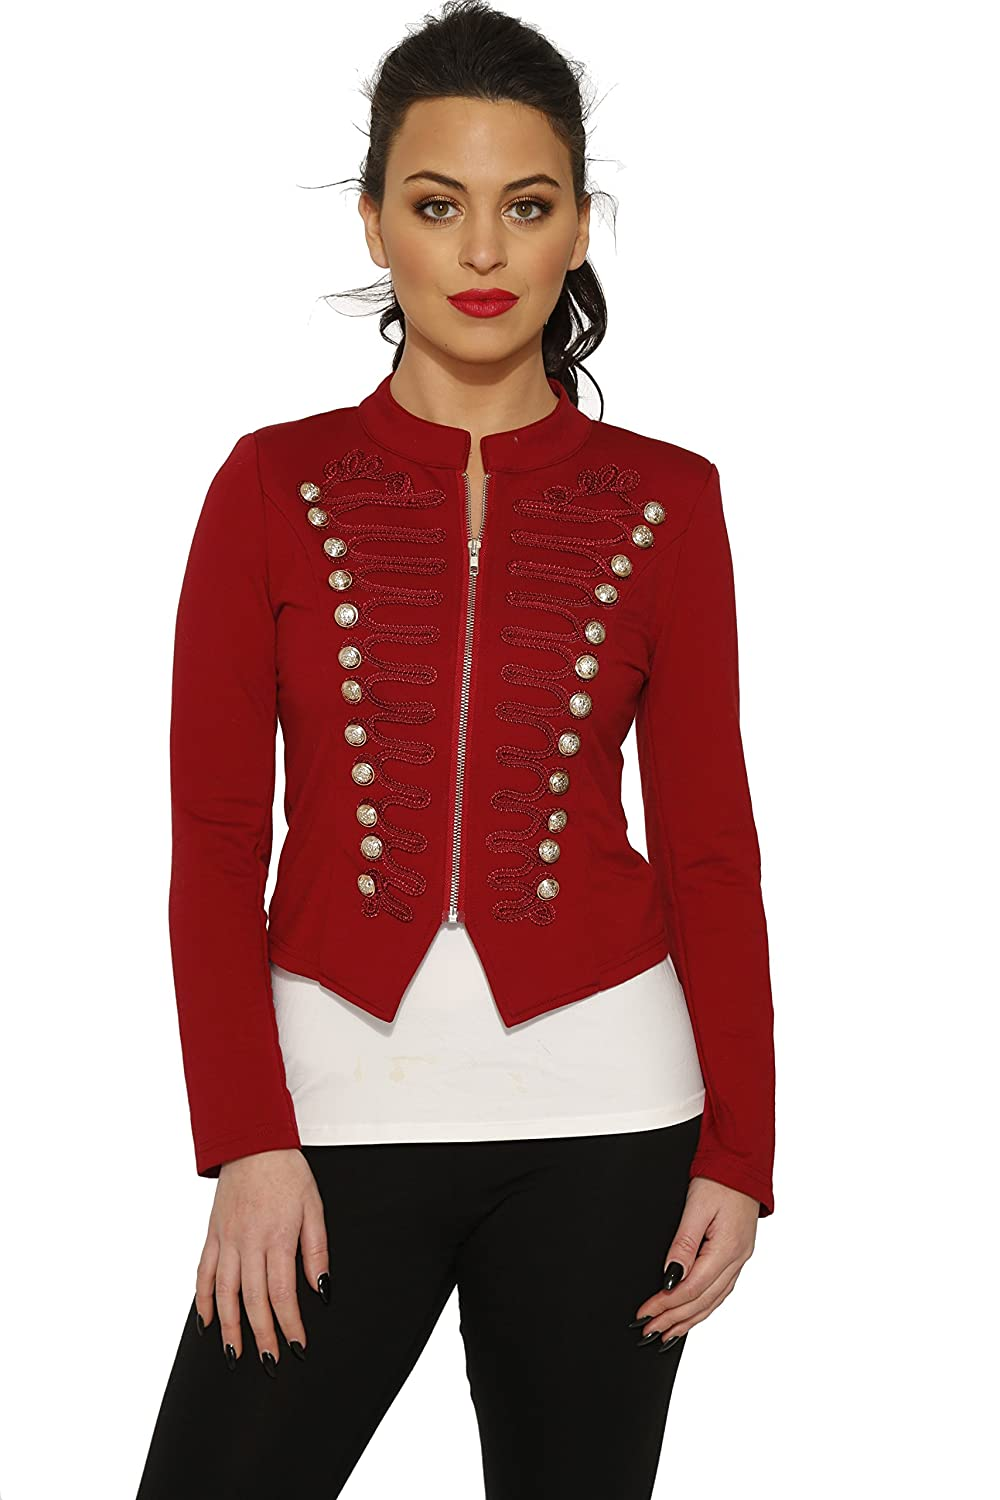 Saloon Girl Costume | Victorian Burlesque Dresses & History Hearts & Roses Red Brigantine Jacket (Shipped from The US & US Sizes) $48.88 AT vintagedancer.com